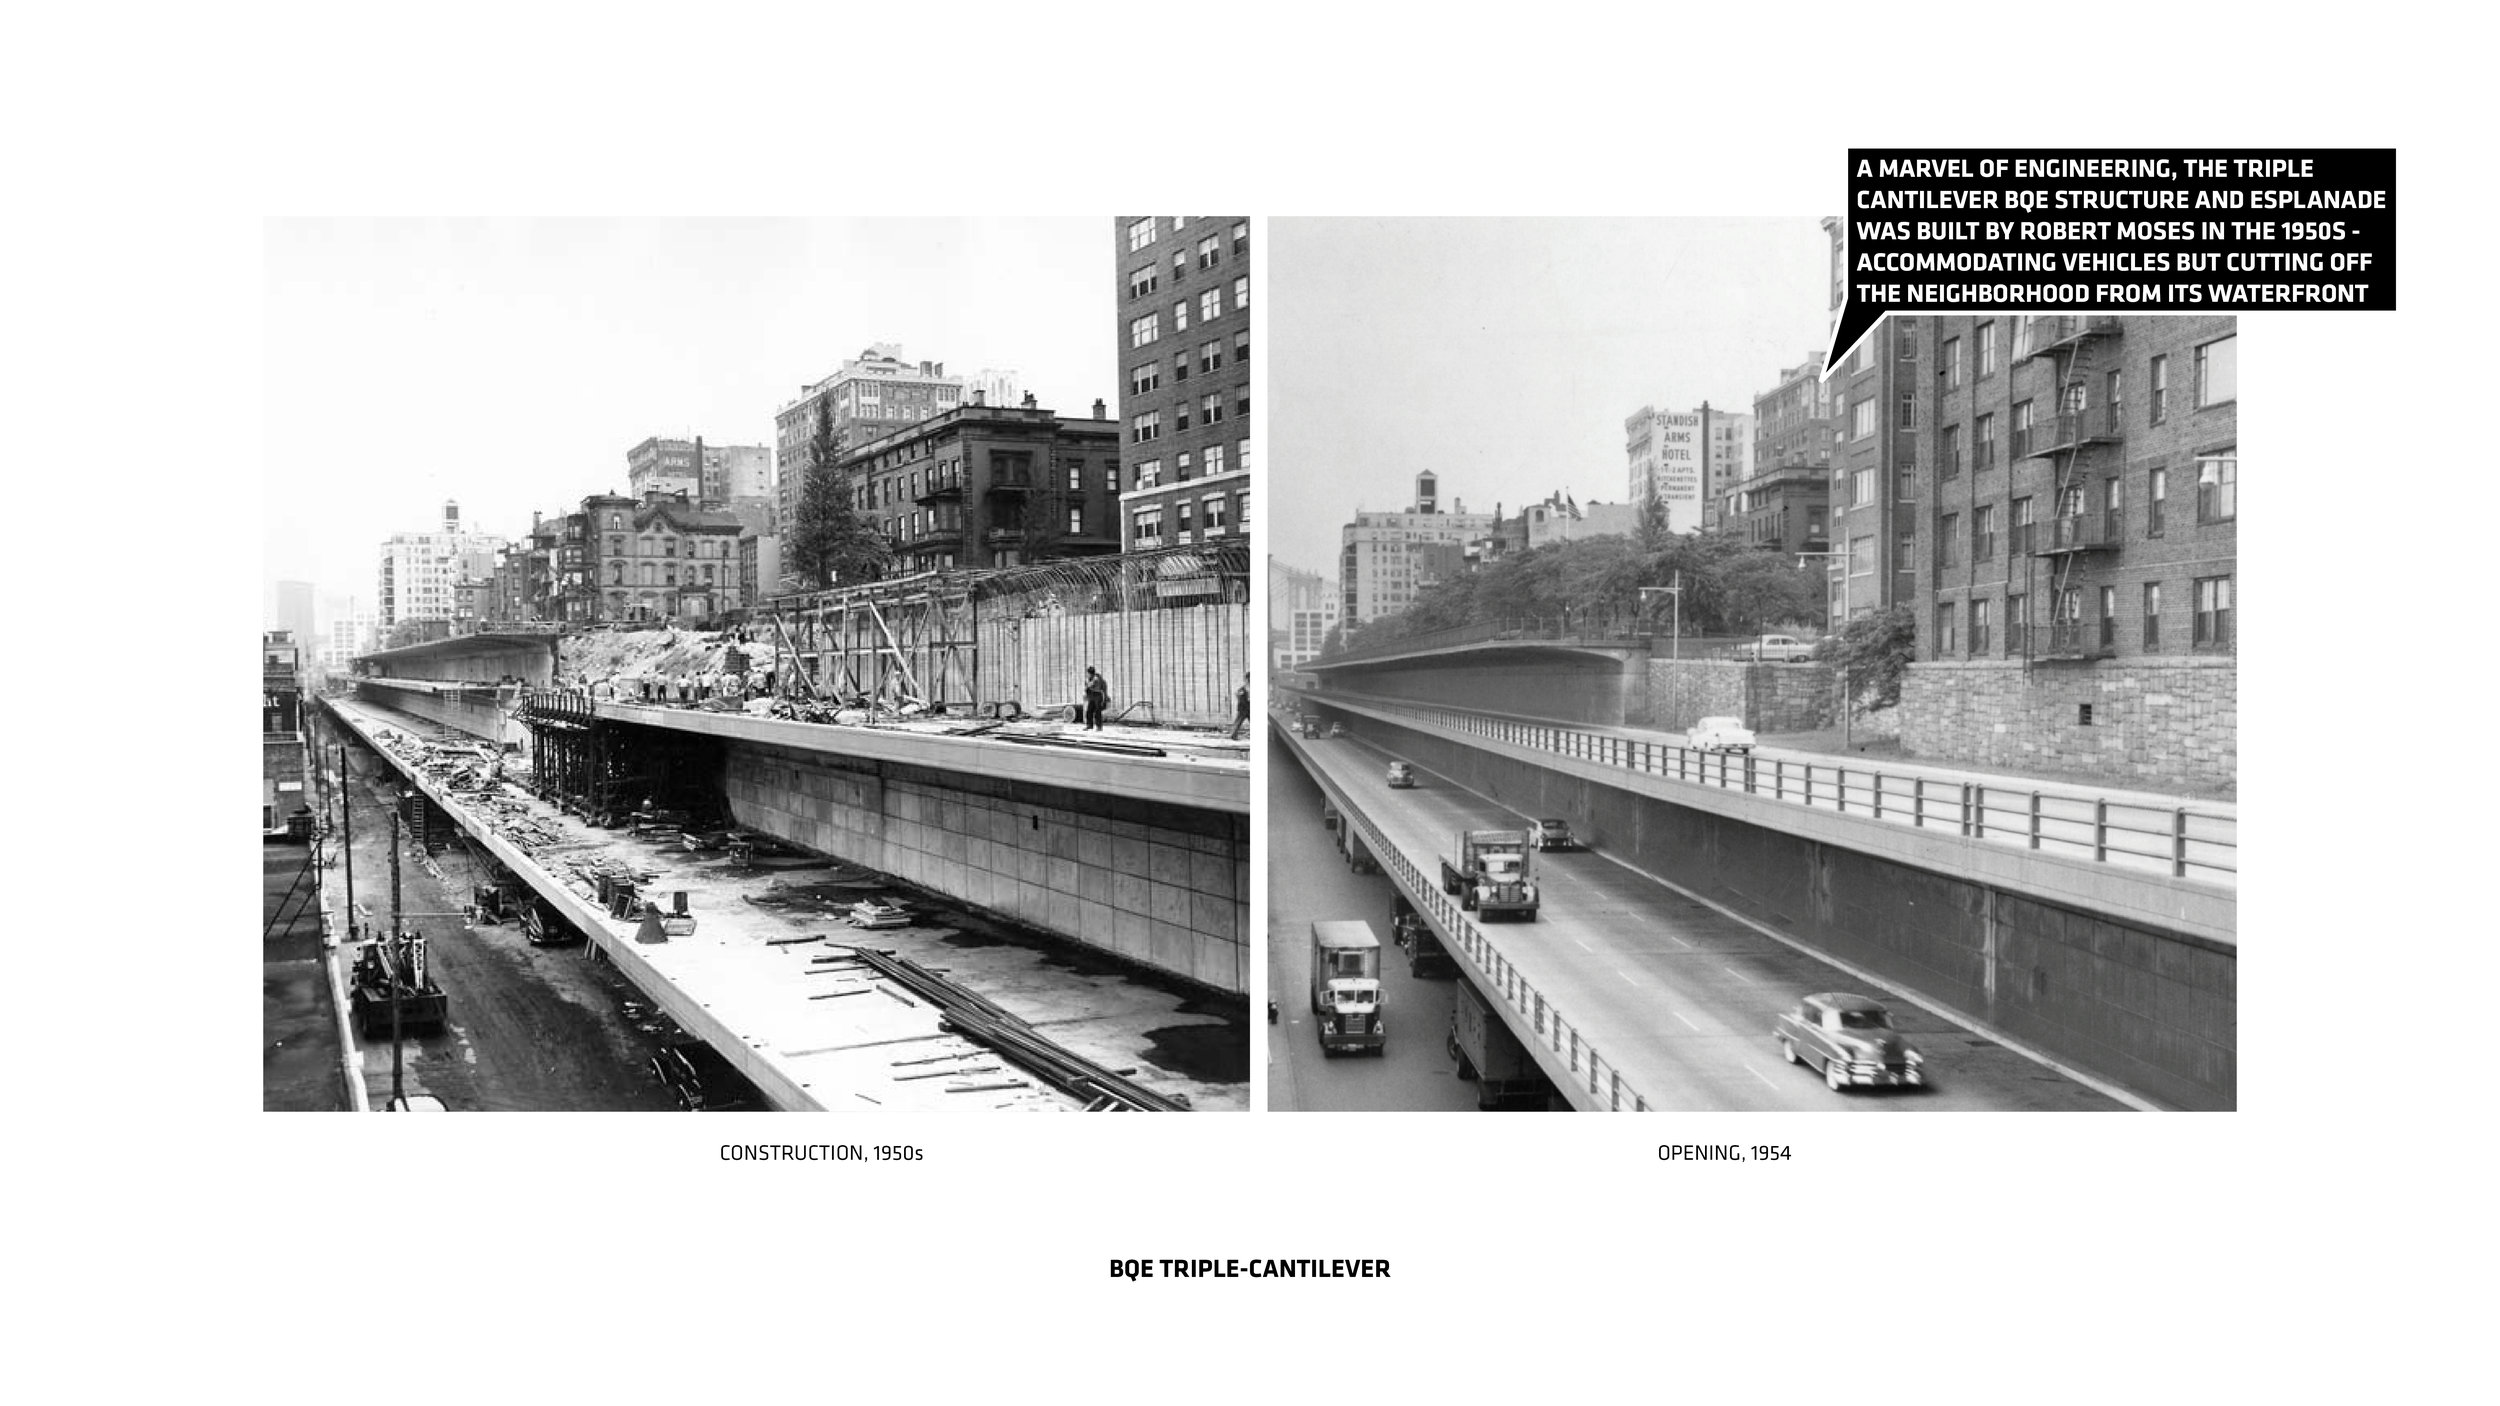 The Brooklyn Queens Expressway was built in the 1950s. Image credit - (BIG) Bjarke Ingels Group.